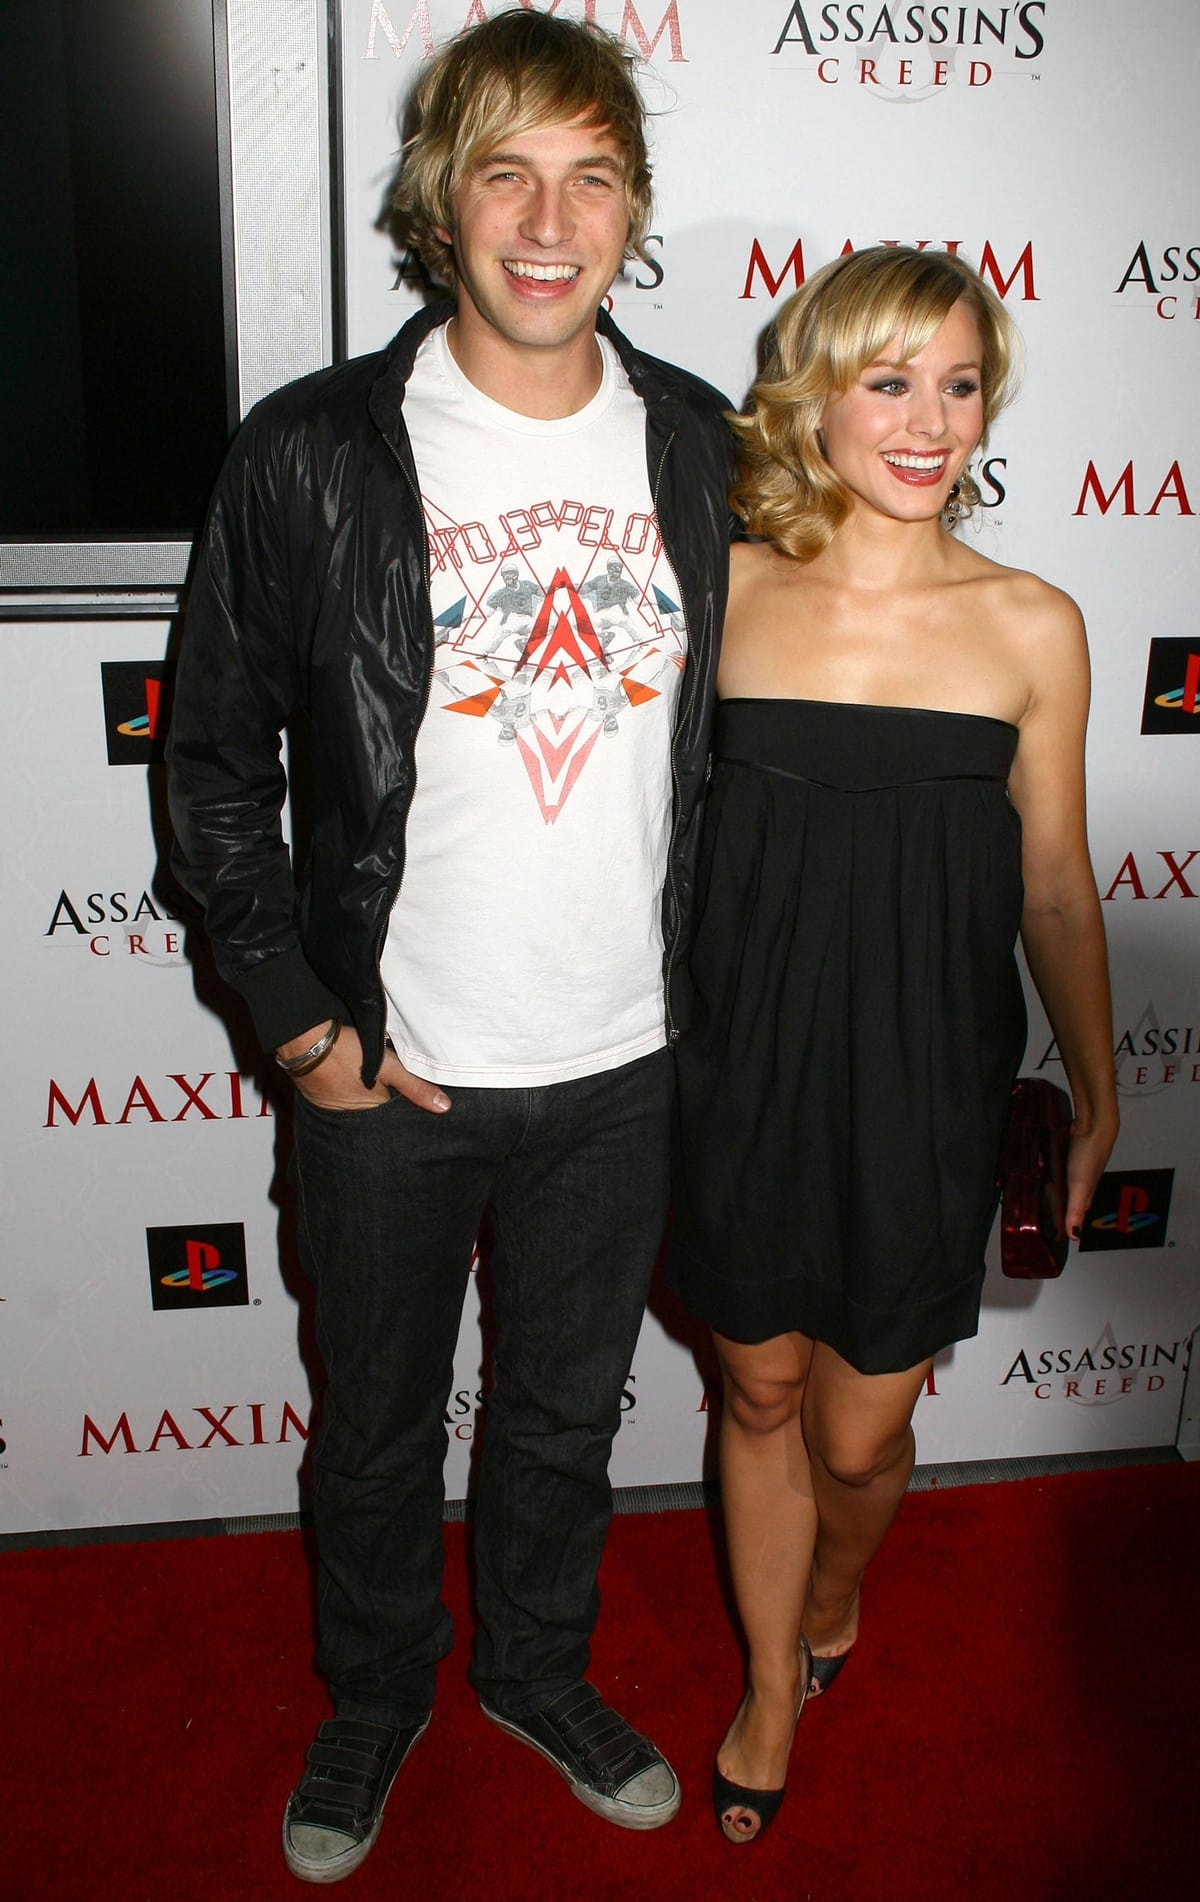 Ryan Hansen and Kristen Bell at the Maxim party for the videogame Assassin's Creed